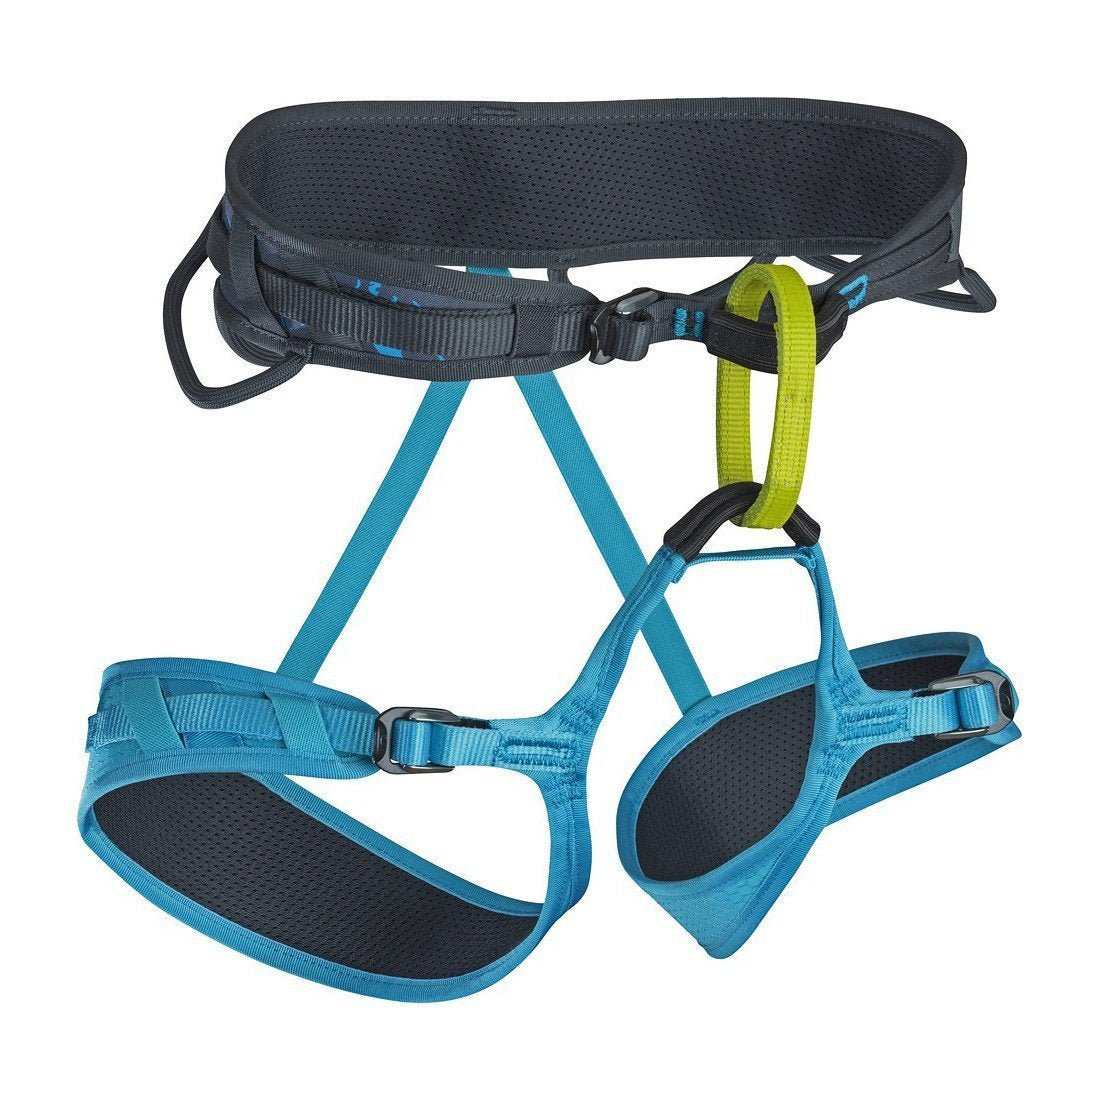 Edelrid Eleve Womens Harness, in black, blue and green colours